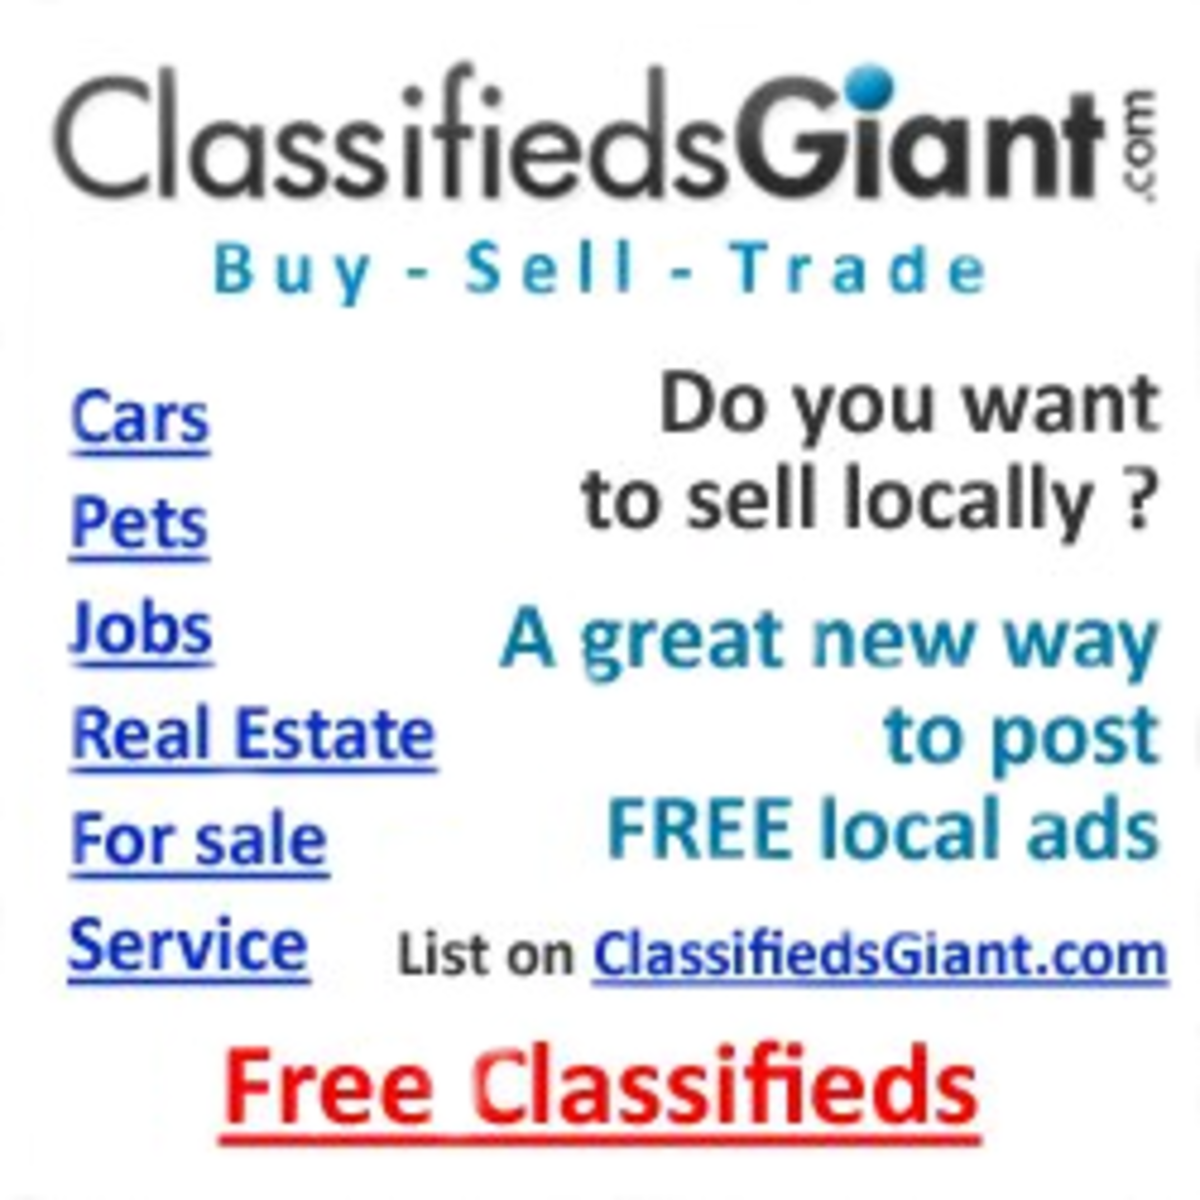 ClassifiedsGiant